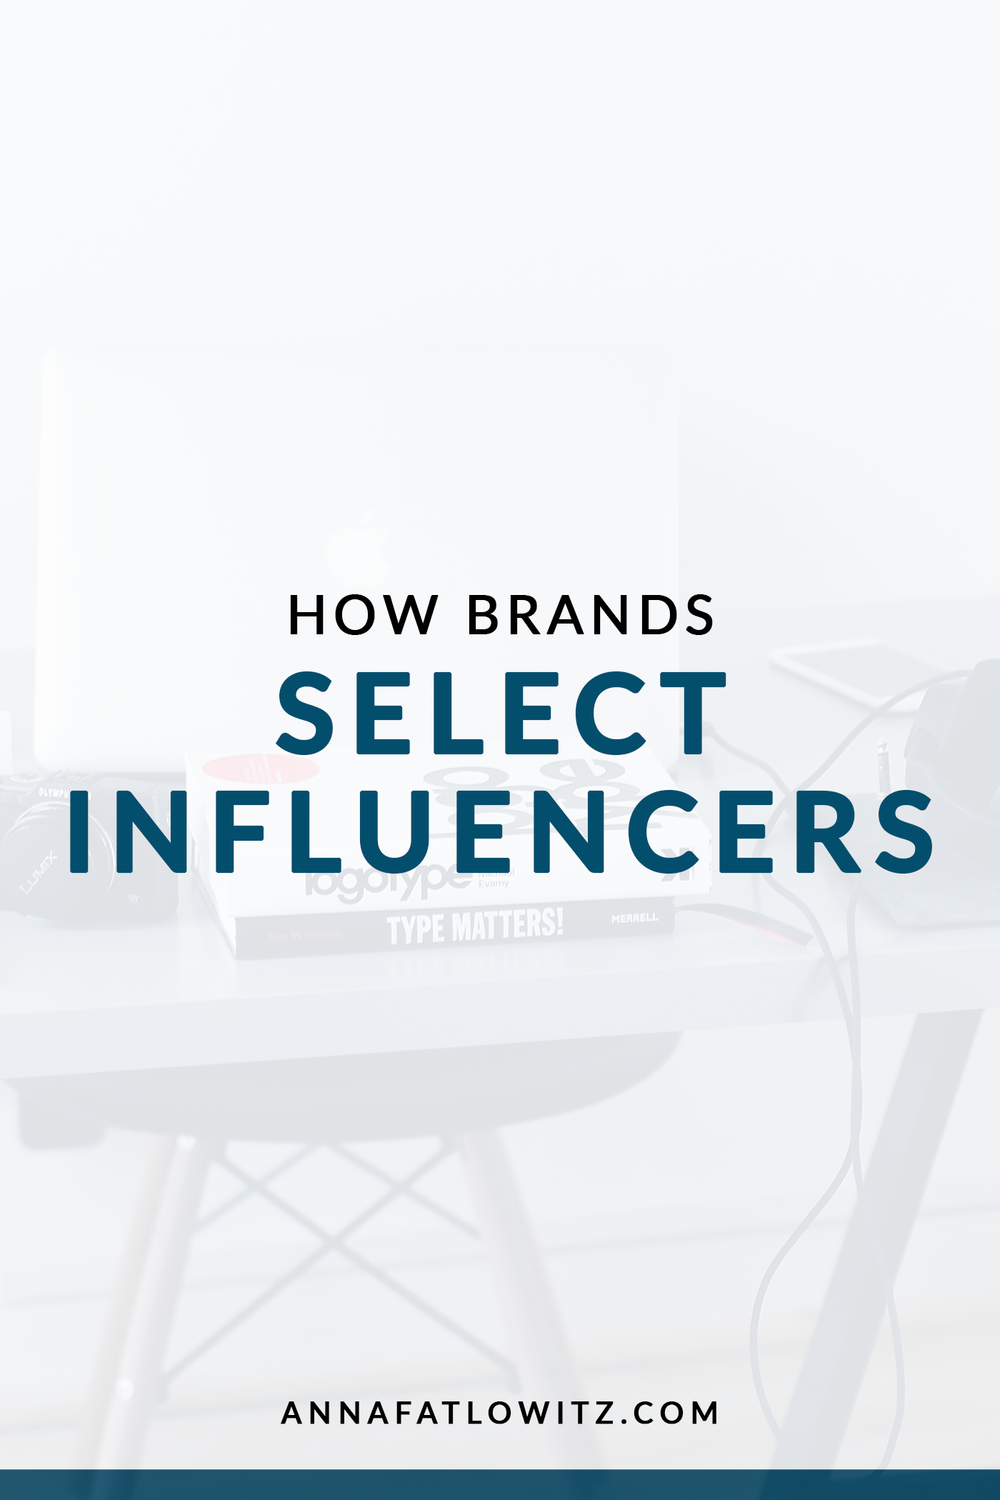 How exactly do brands select influencers? This is the age old question in the blogging community. Here are the actual things brands are looking for in influencers, not numbers.